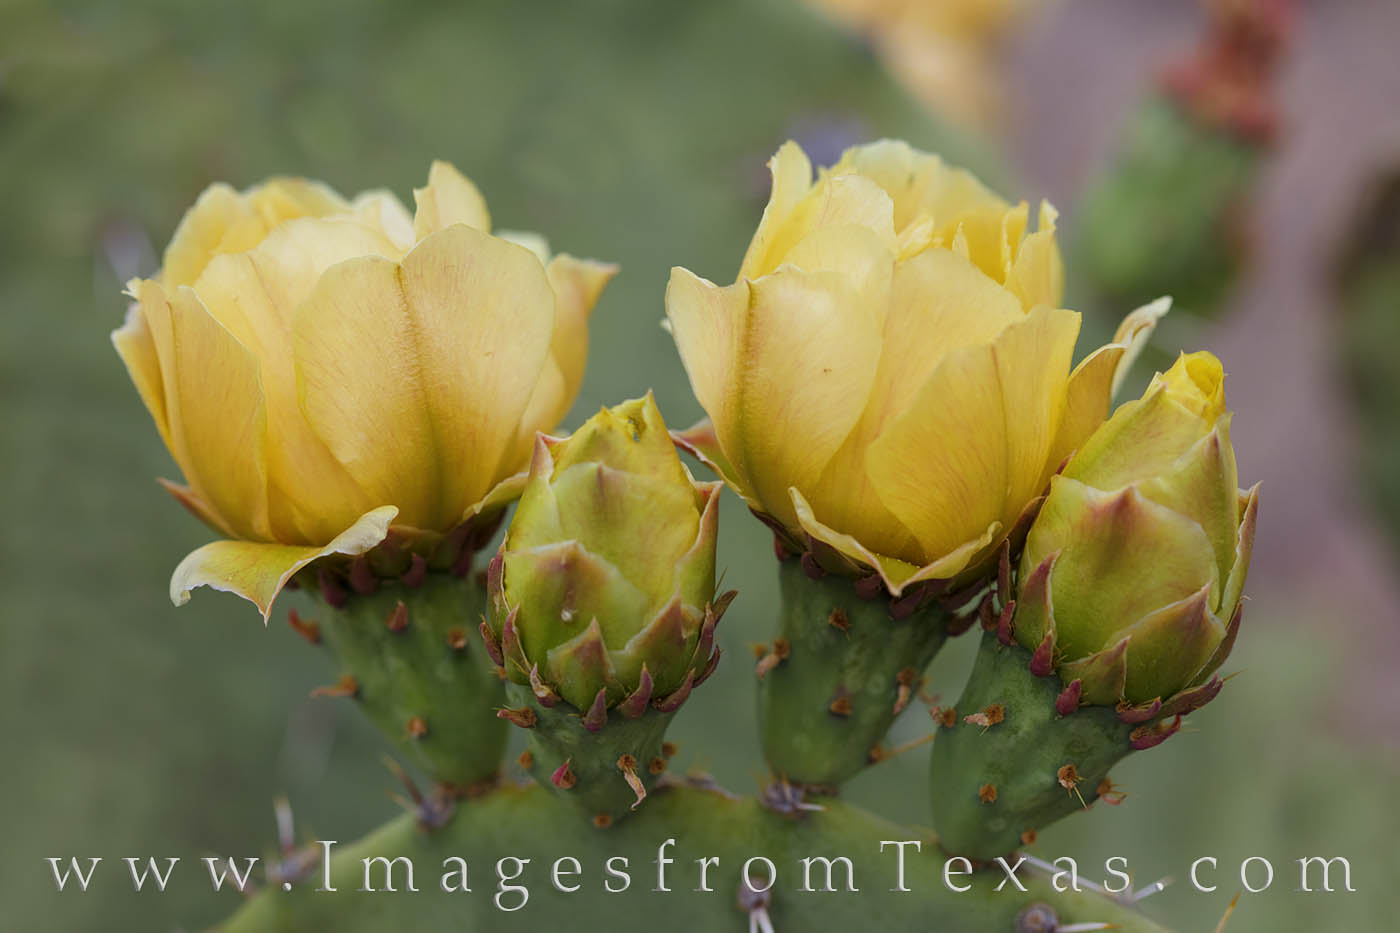 prickly pear, big bend ranch, cactus, chihuahuan desert, cactus flowers, blooms, desert, big bend, photo